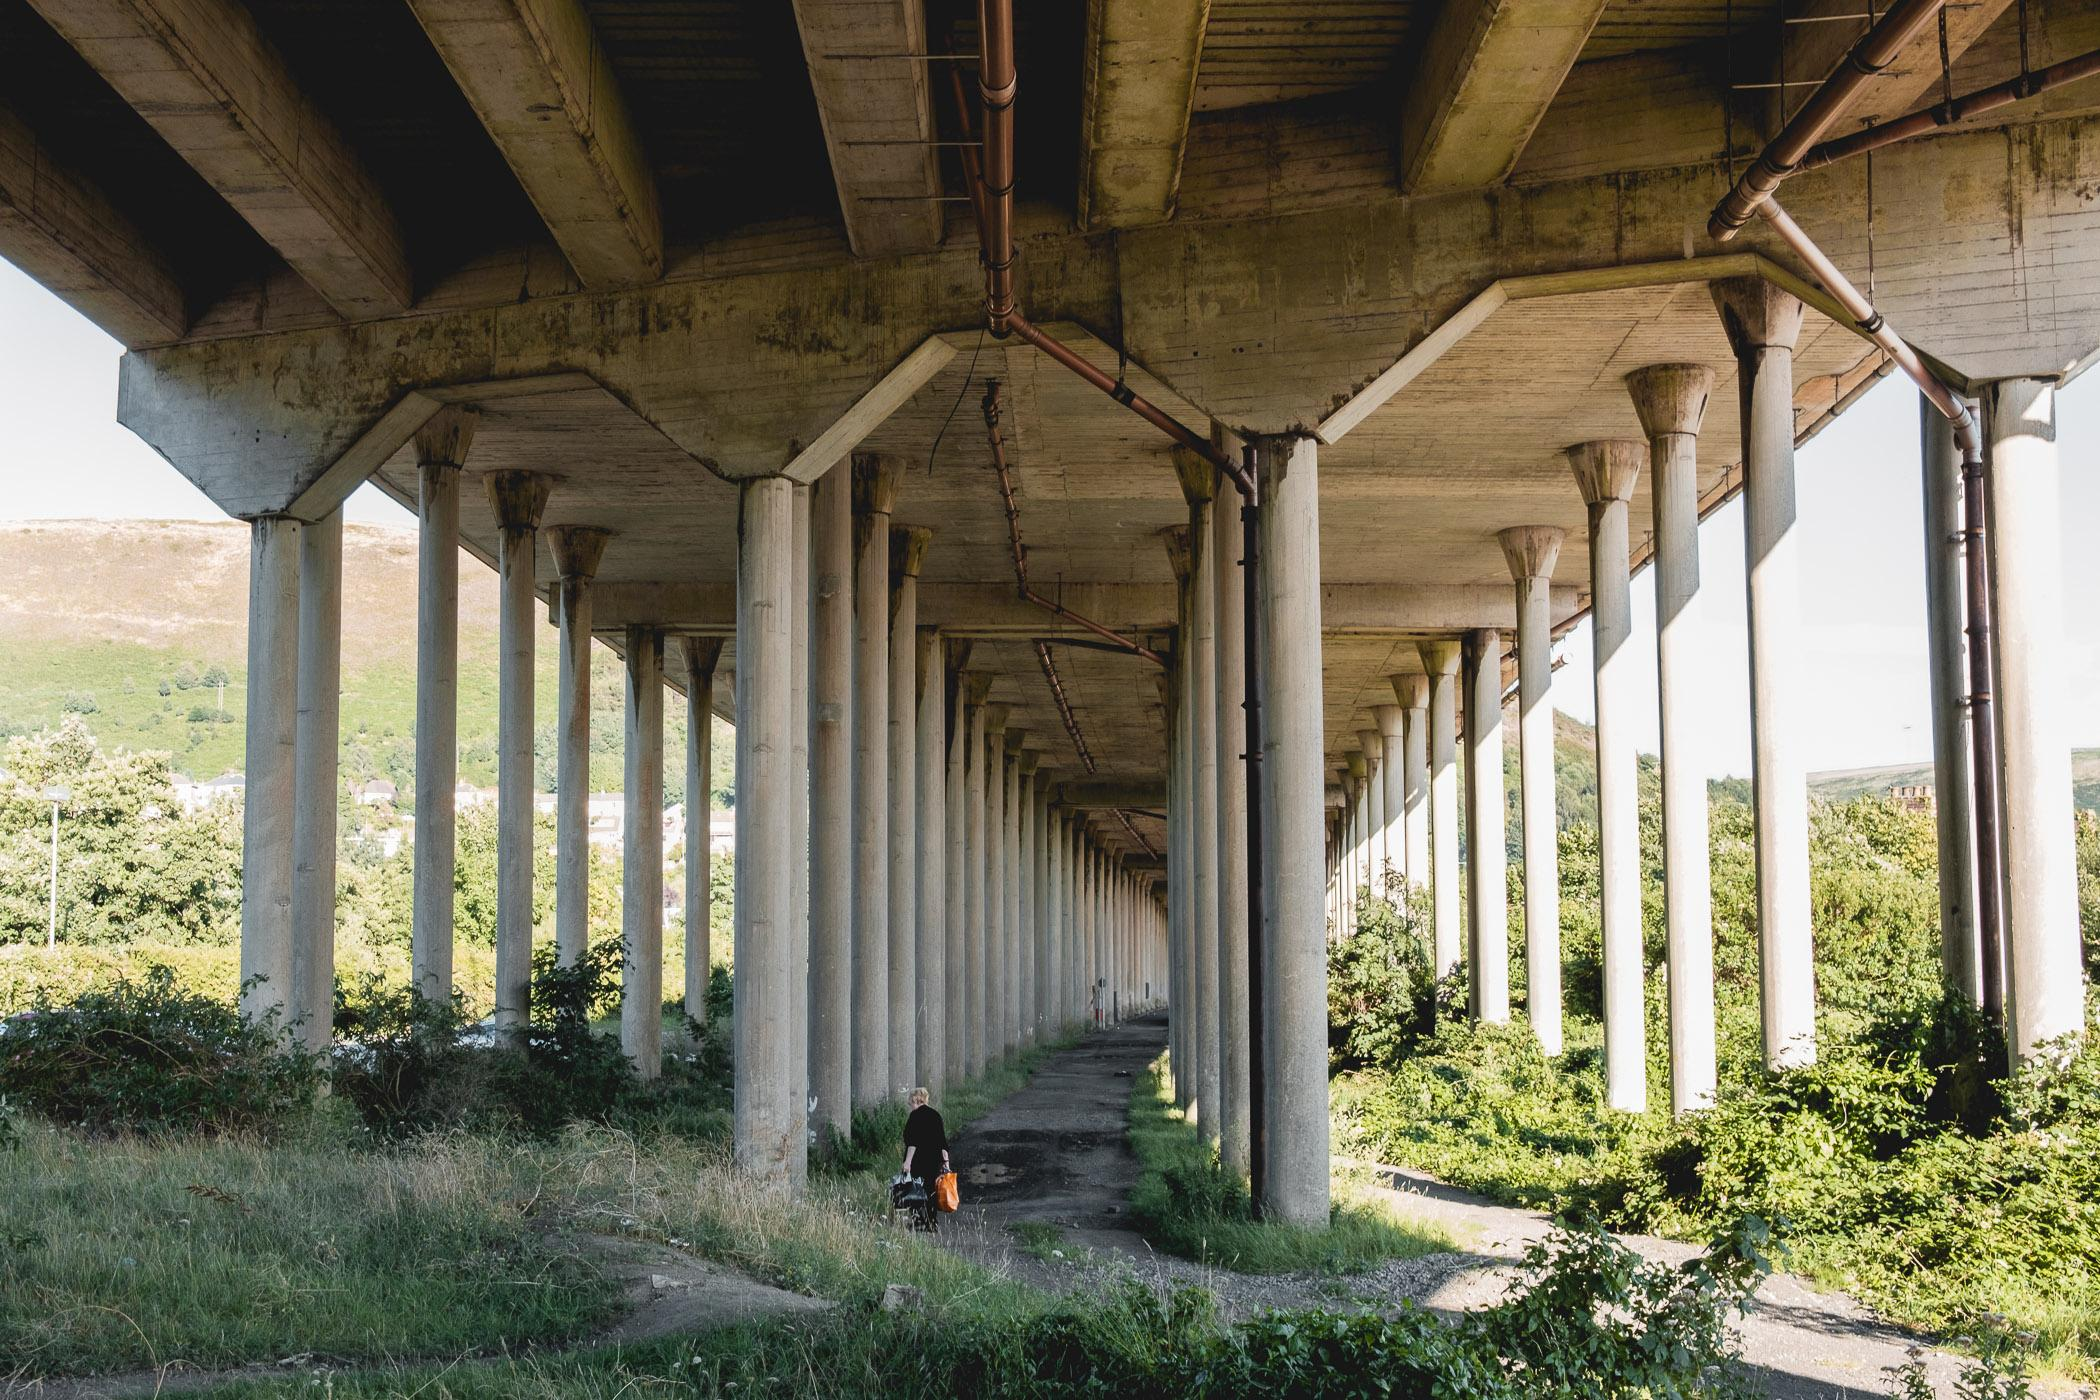 The concrete pillars used in some sections of the motorway were considered cutting edge technology at the time of its construction in the 1960s. Since then, the areas beneath have been taken back by both nature and residents. This section is a popular cycling and horse riding path.